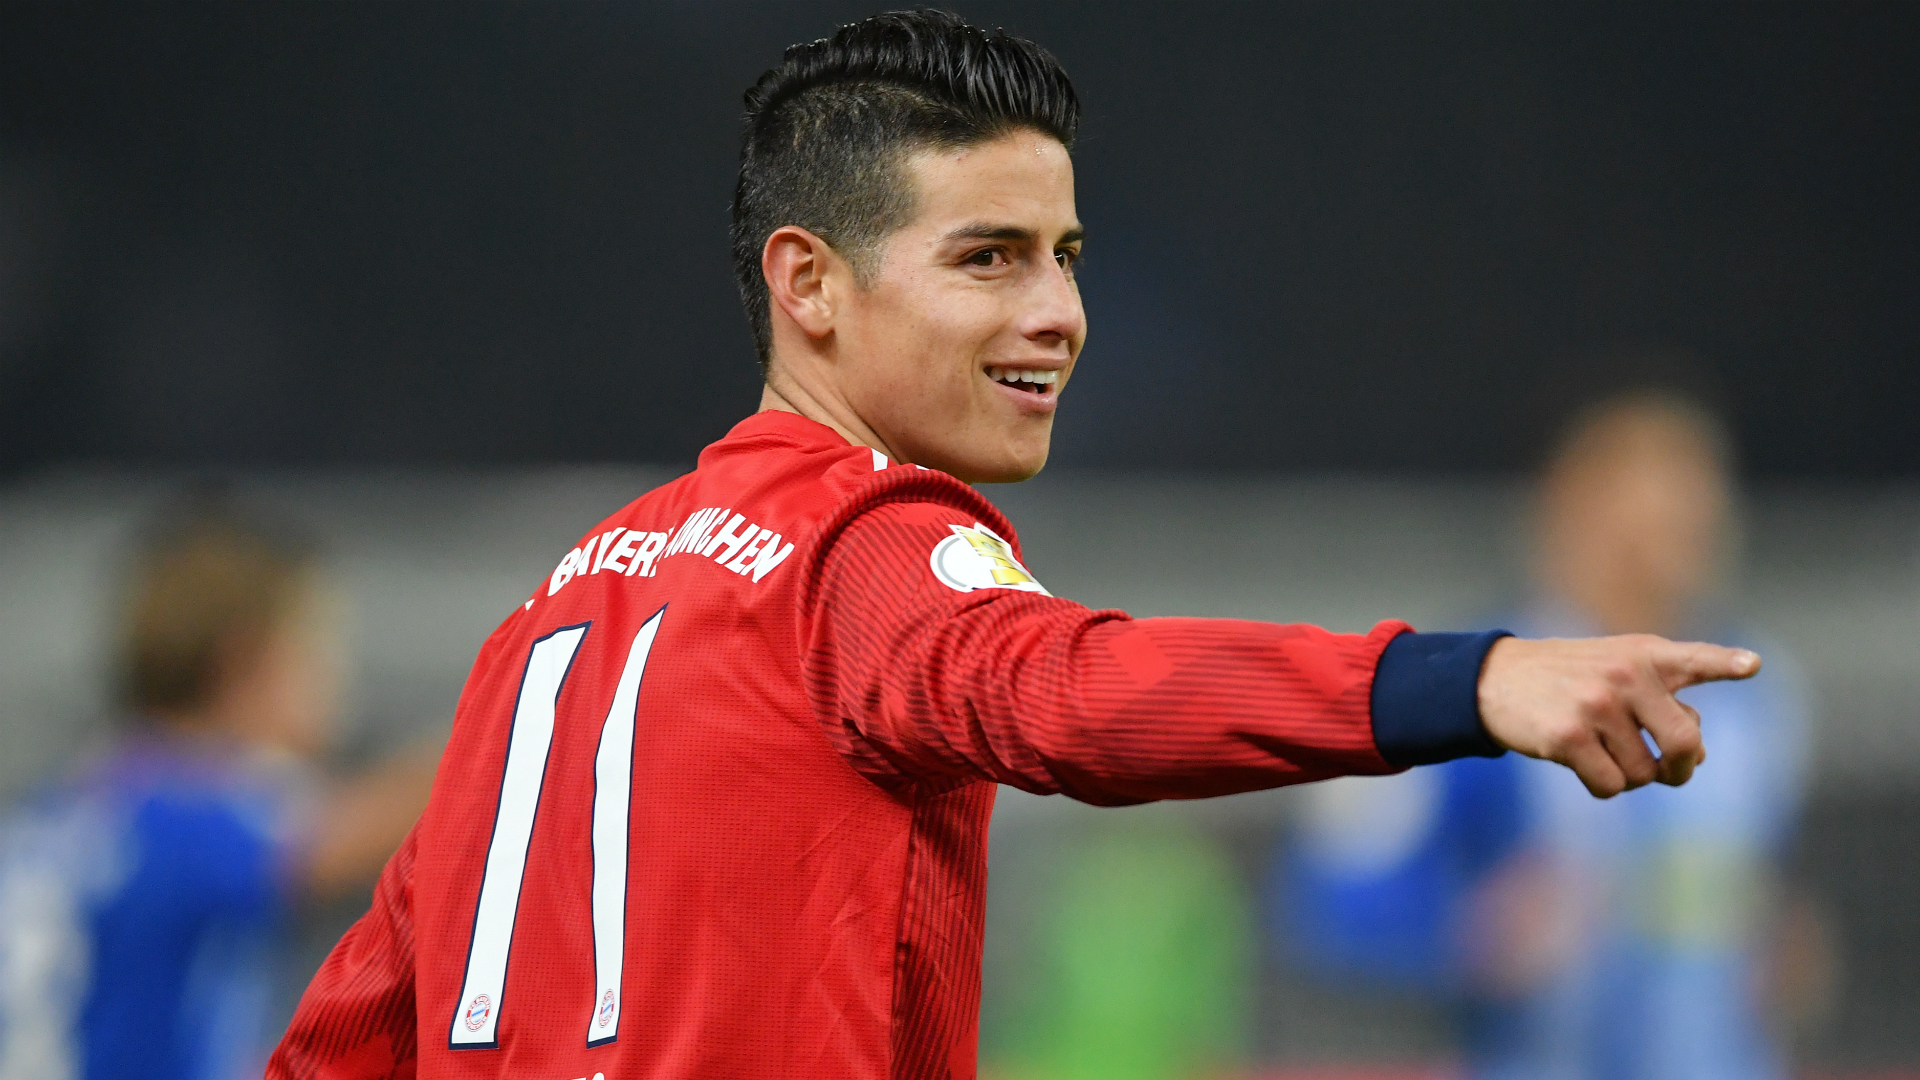 I have everything in Madrid - James hints at return to Spain